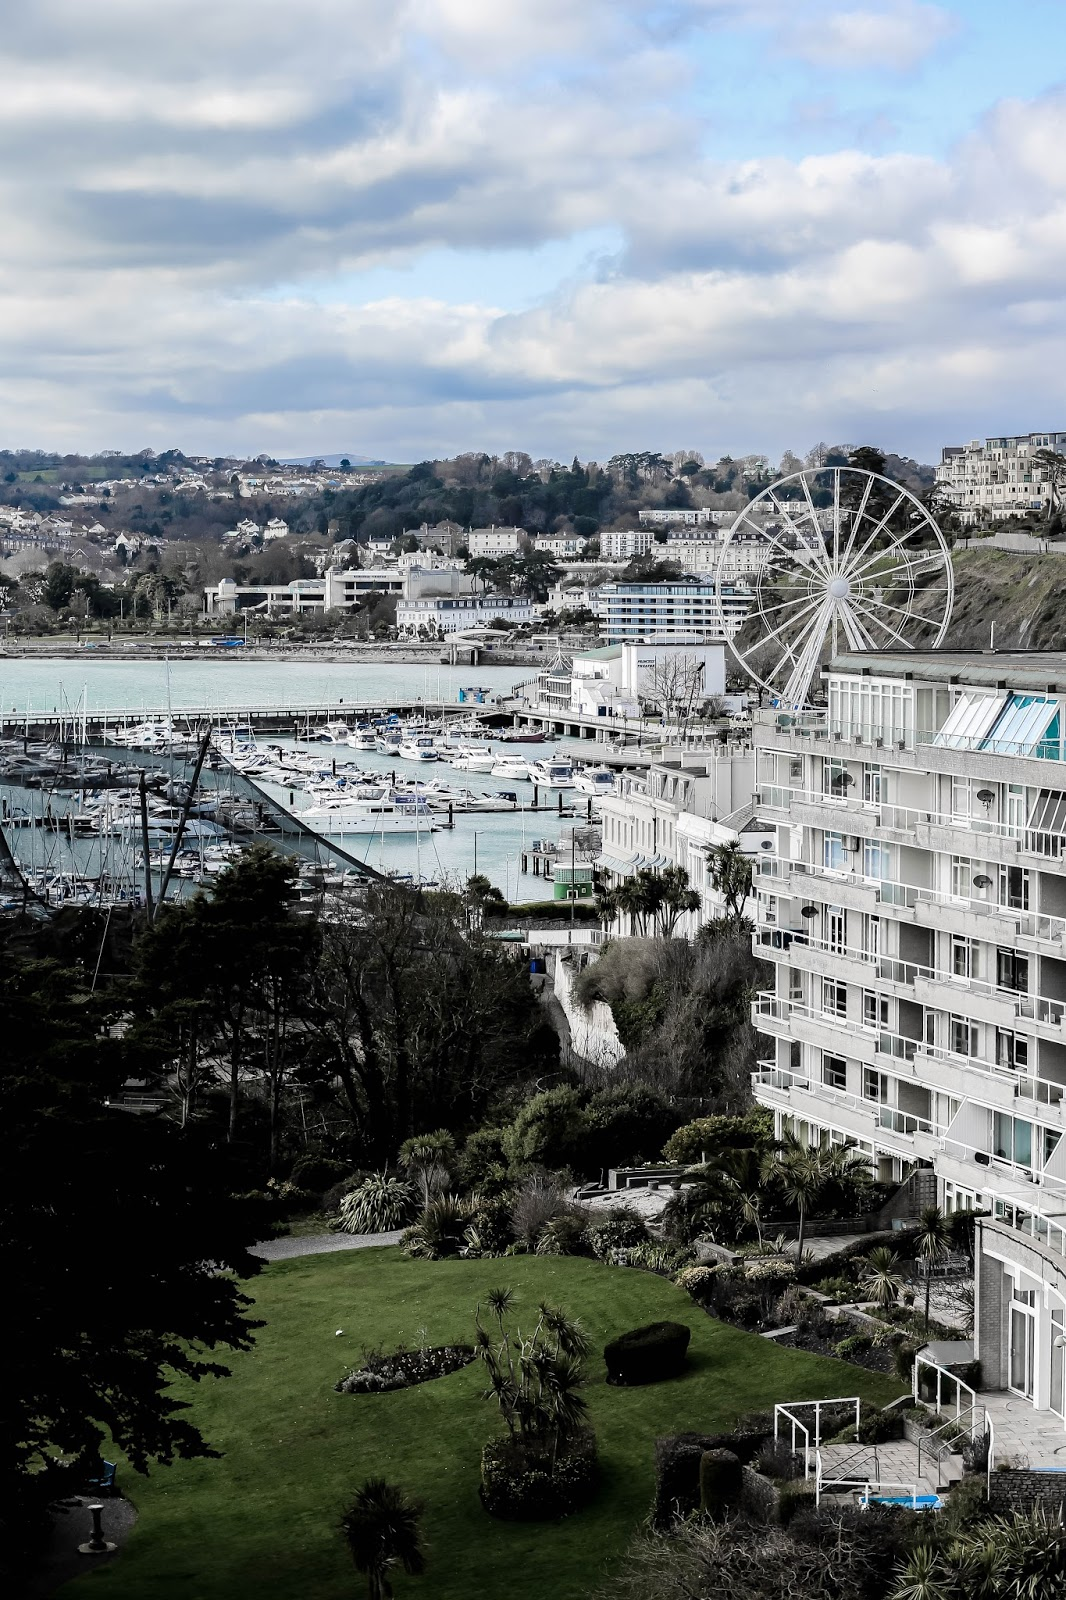 Luxury Hotels with Best Views of Torquay